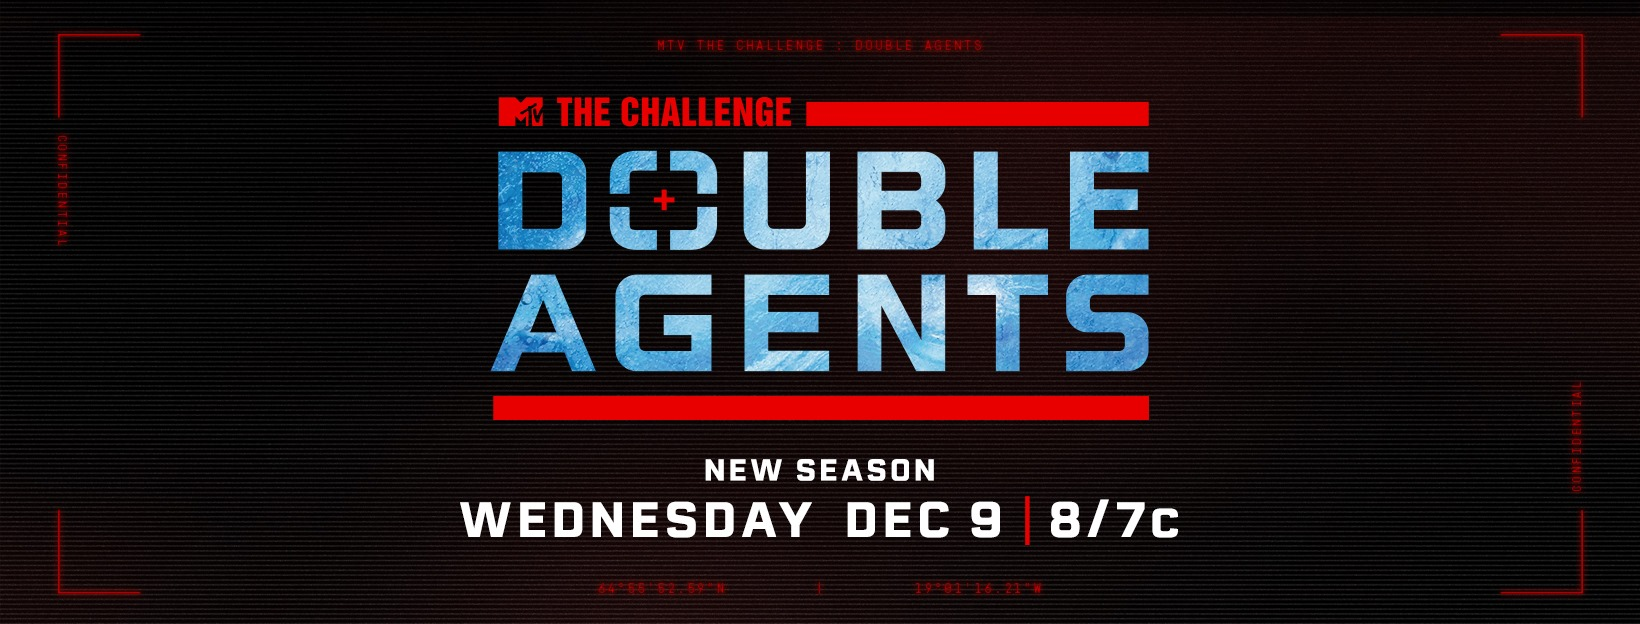 The Challenge: Double Agents